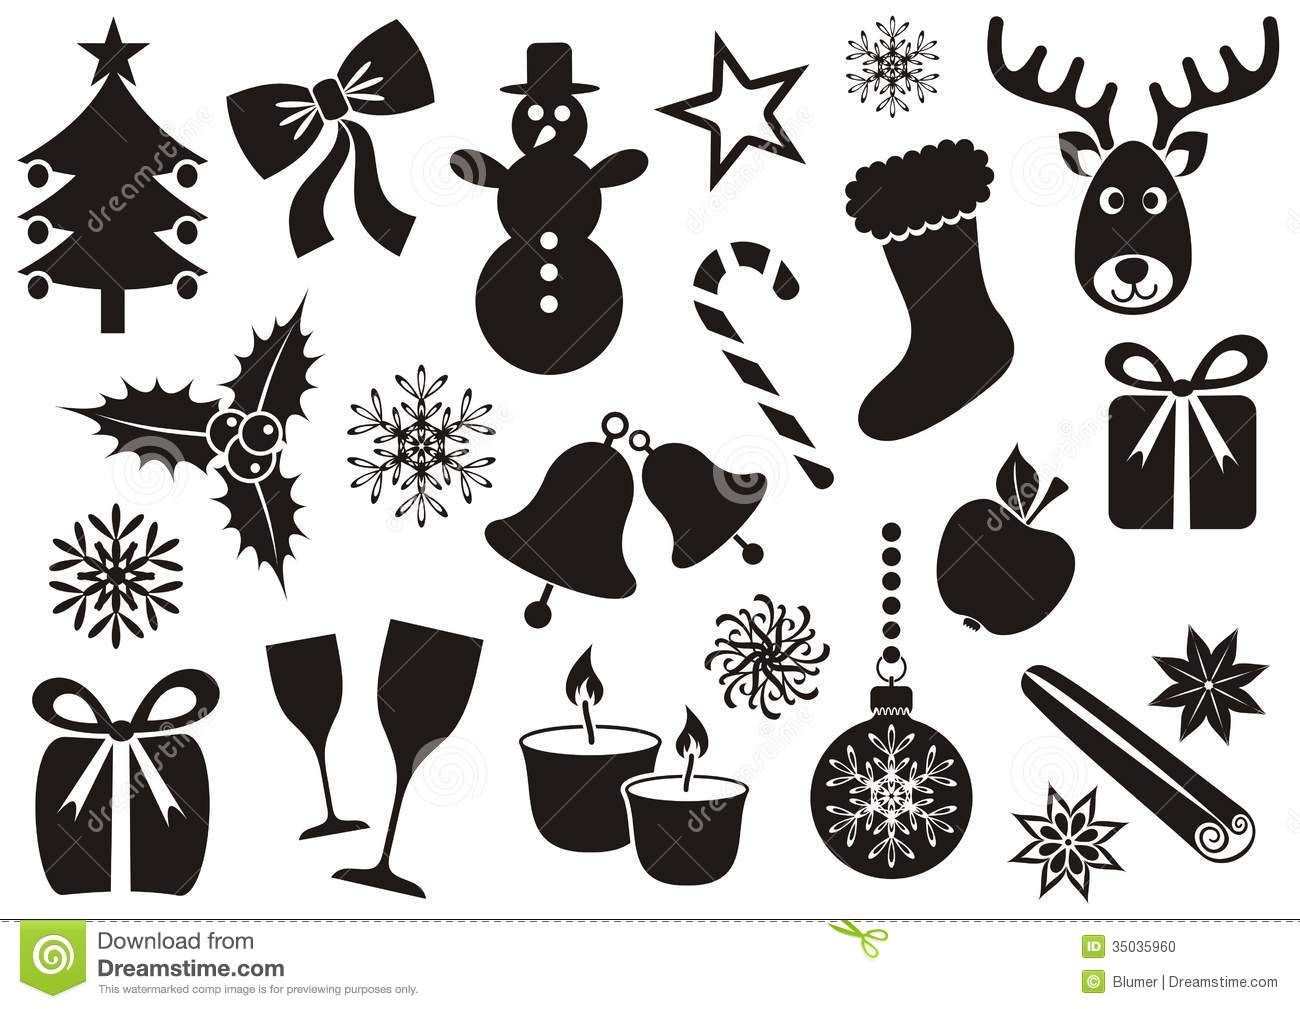 Christmas Vector Silhouette Silhouette Christmas Ornaments Silhouette Christmas Ornaments Image